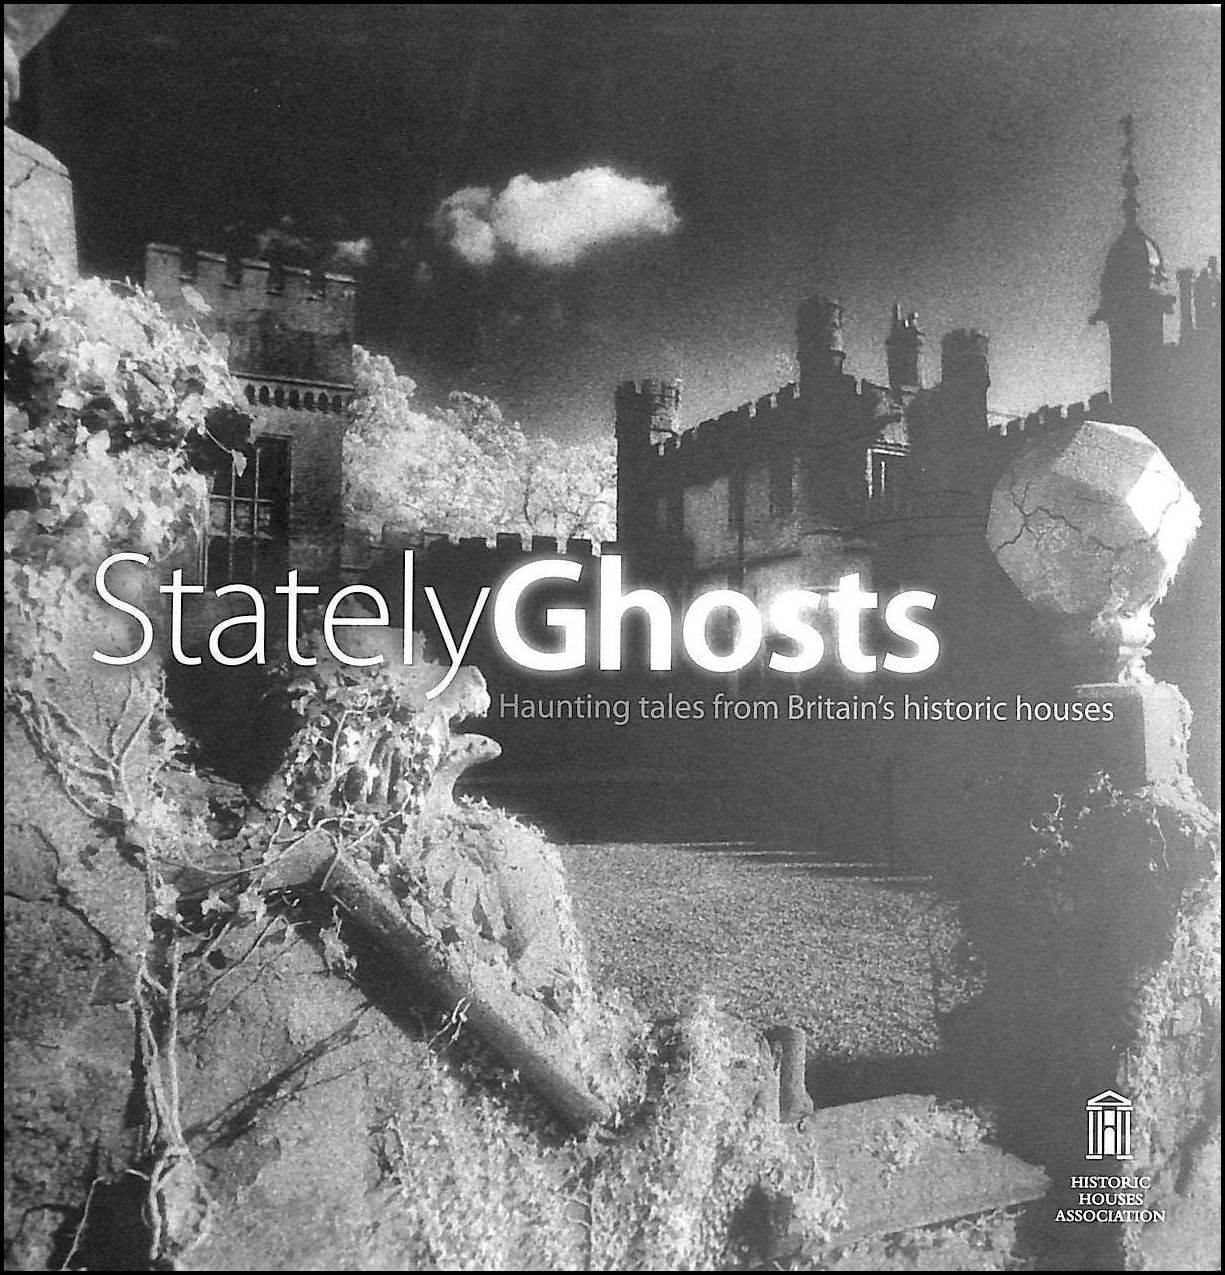 Image for Stately Ghosts: Haunting Tales from Britain's Historic Houses